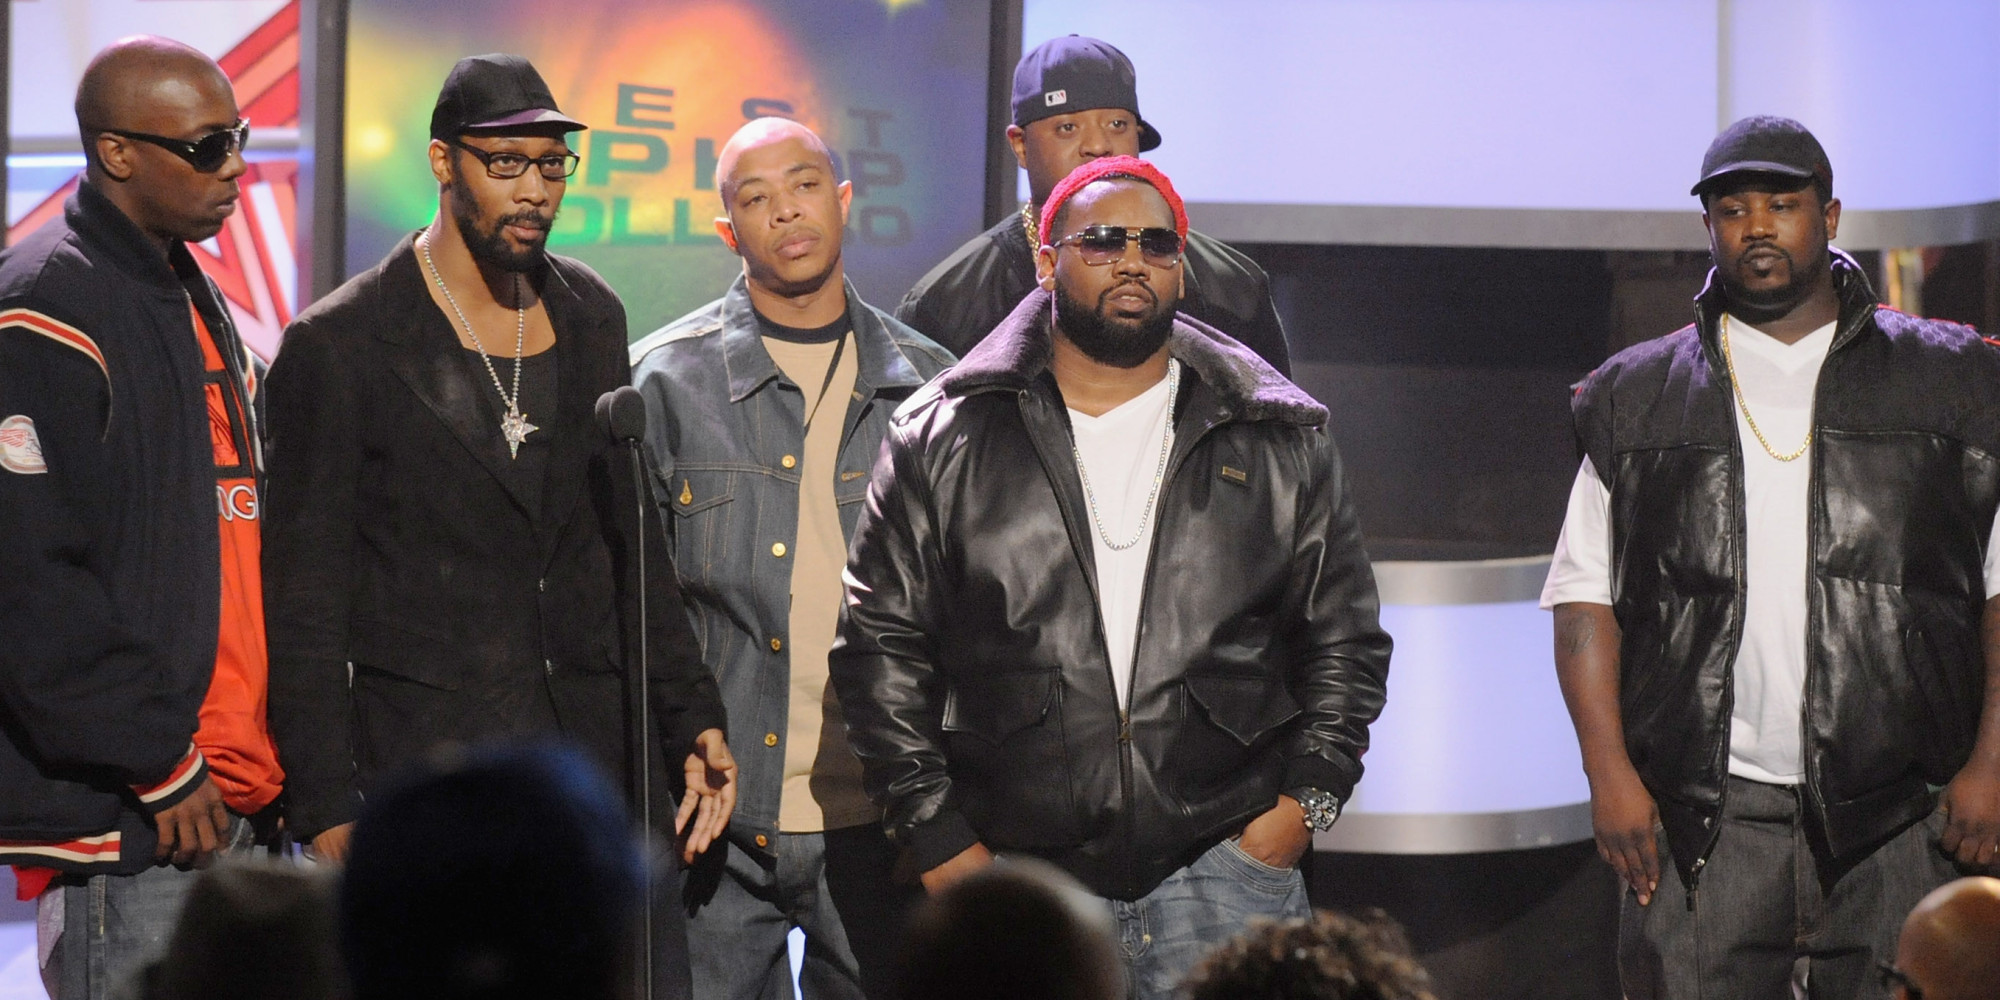 ATLANTA - OCTOBER 18:  Recording artists Inspectah Deck, The RZA, U-God and Raekwon of Wu-Tang Clan onstage during the 2008 BET Hip-Hop Awards at The Boisfeuillet Jones Atlanta Civic Center on October 18, 2008 in Atlanta, Georgia.  (Photo by Rick Diamond/Getty Images for BET)